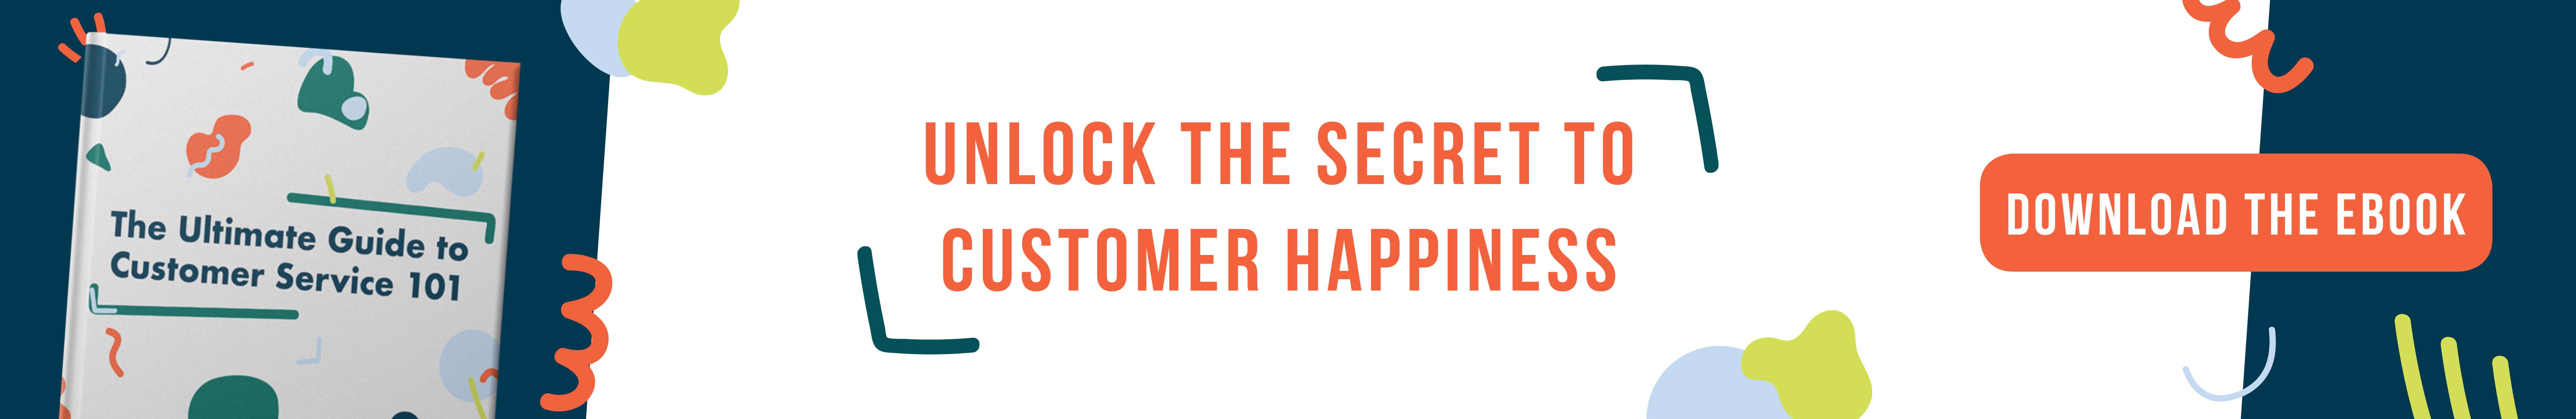 The Ultimate Guide To Customer Service 101